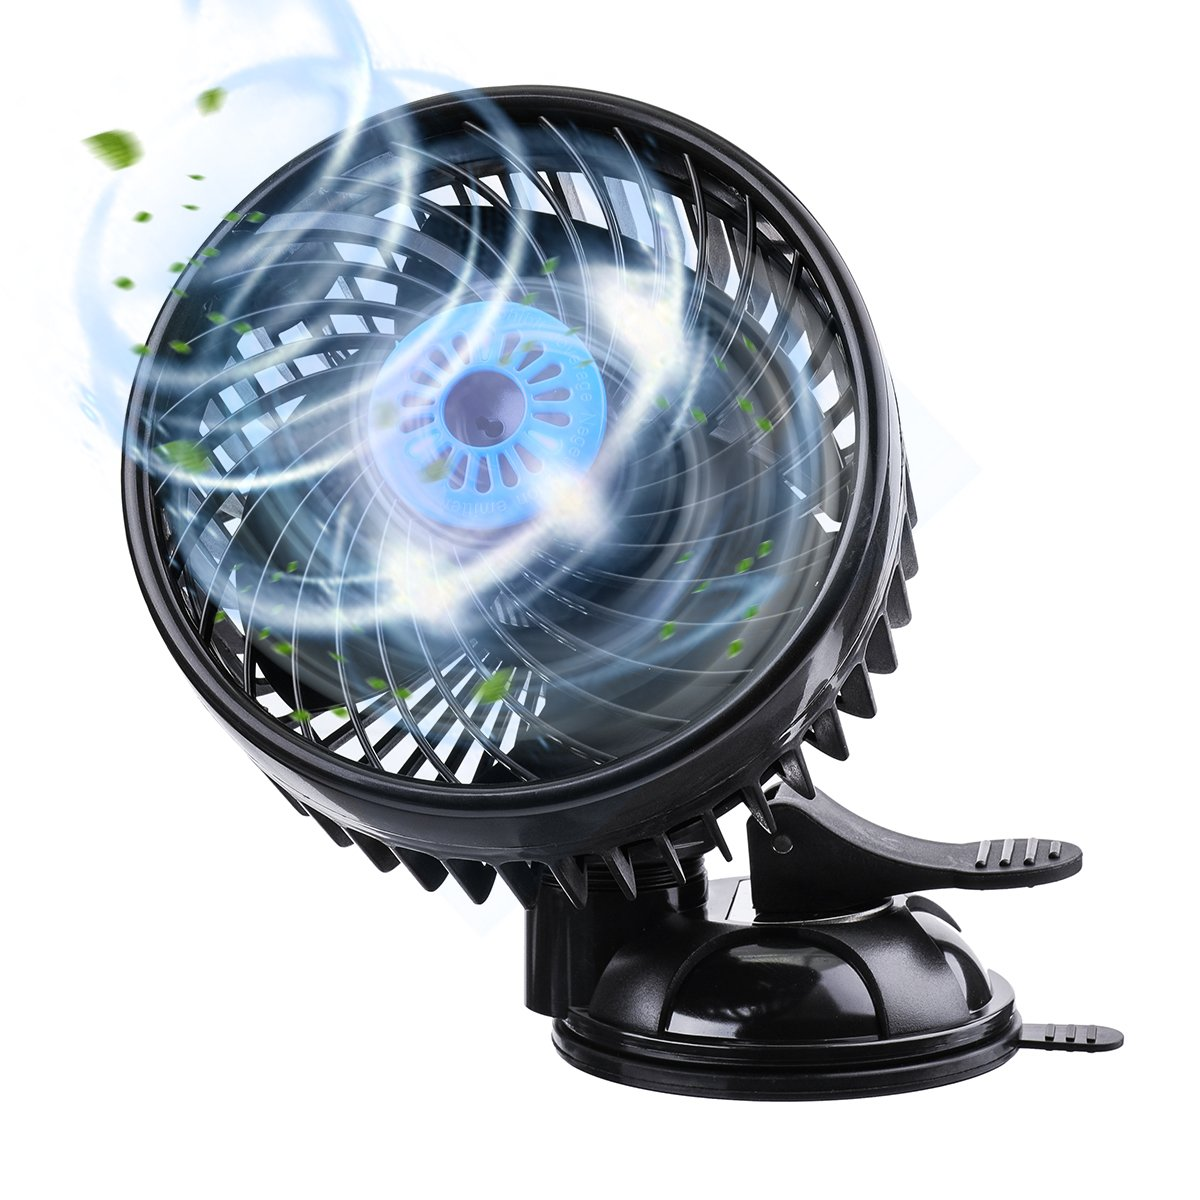 car air fan cooling air fan 12 volt fan Powerful Adjustable Speed Car Fans Electric Rotatable Windshield Cooling Fans with Suction Cup Summer wind Fan Air Circulator for Van SUV RV Boat Auto 6.5""